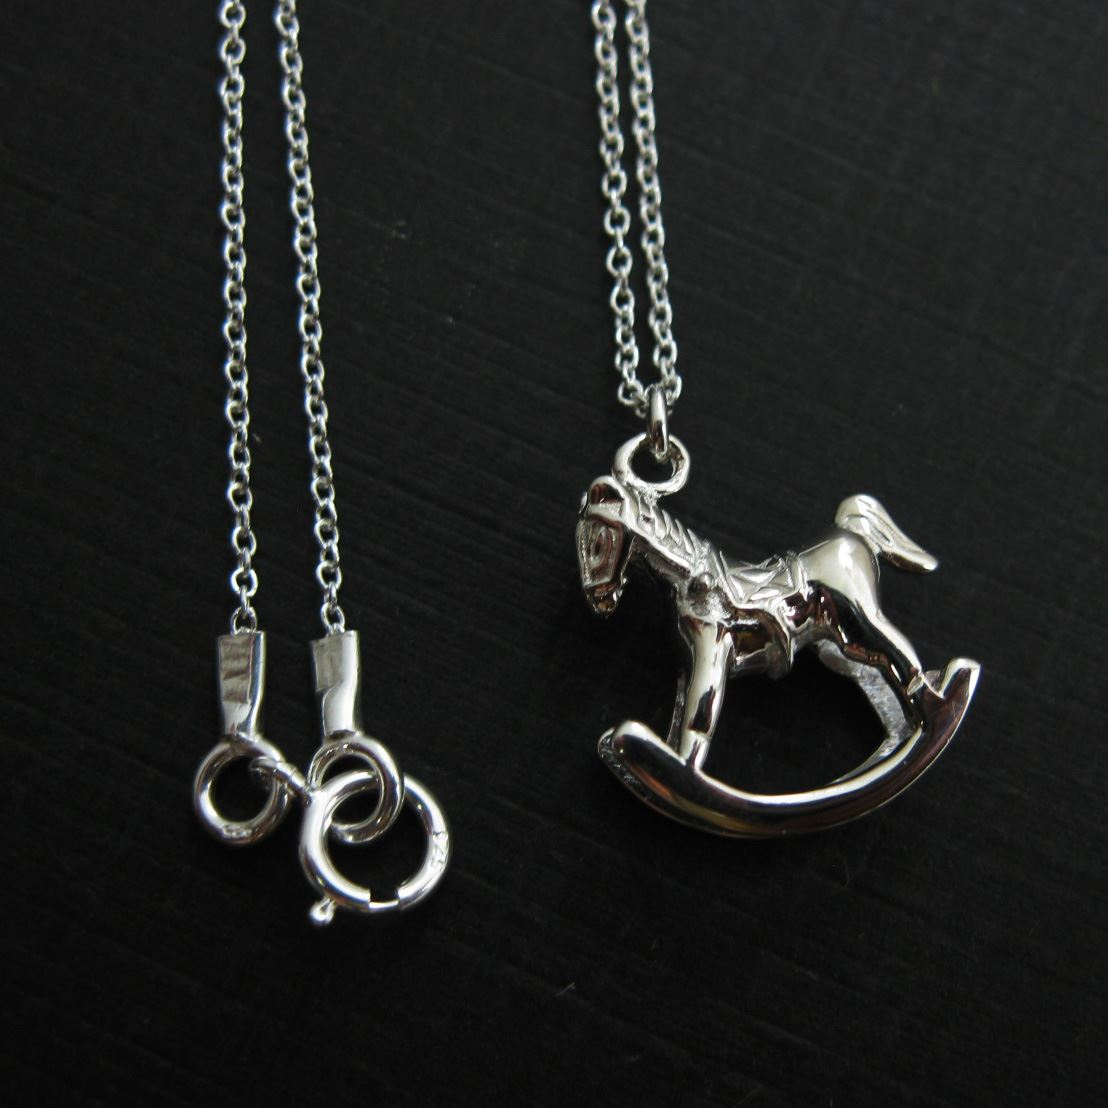 925 Sterling Silver Rockinghorse Charm Pendant Necklace (16-24 inches)